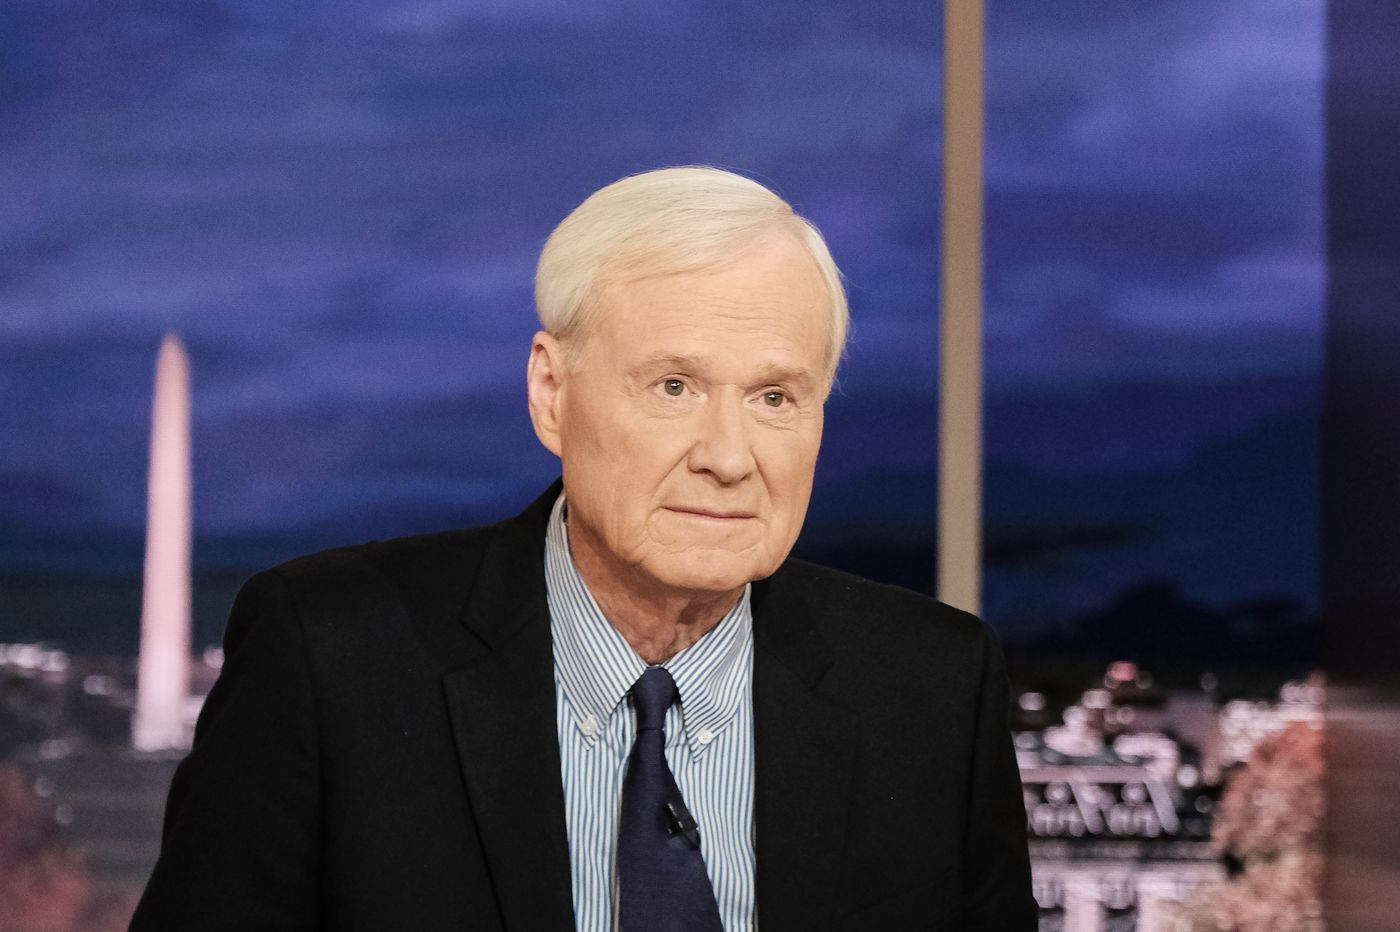 Chris Matthews' shocking MSNBC exit prompts a Fox News host to defend the Philly native